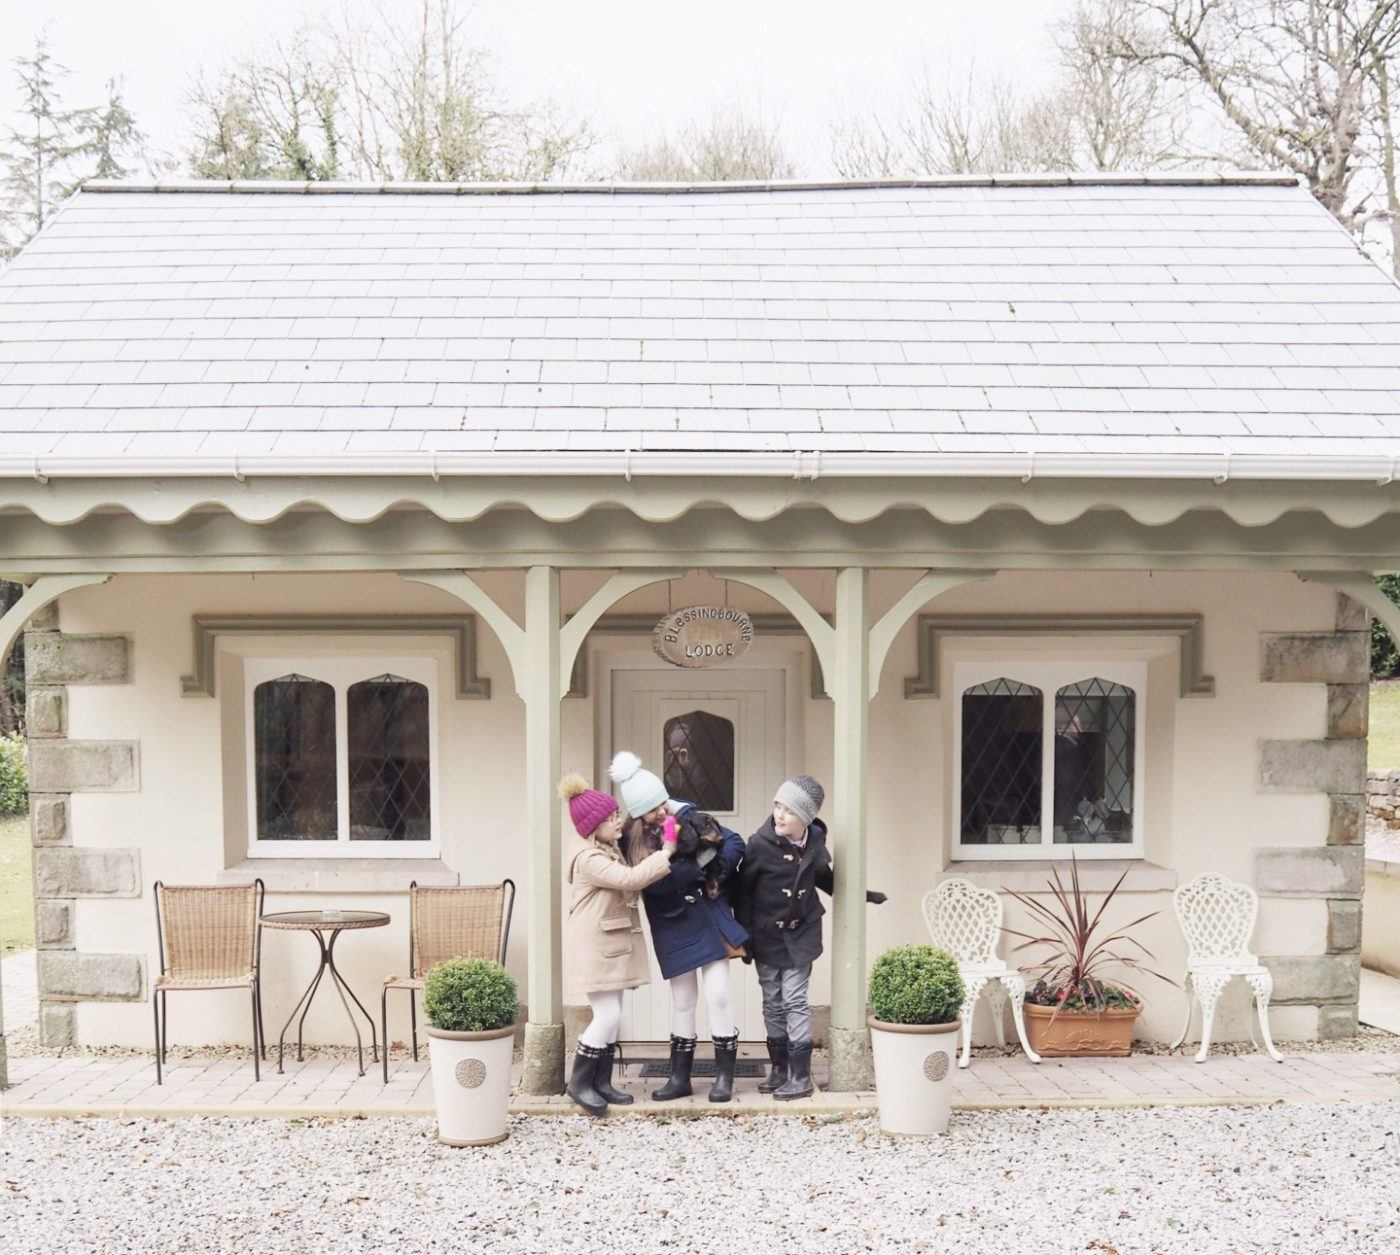 littlewood life blogger gate lodge 5 star self catering pet friendly